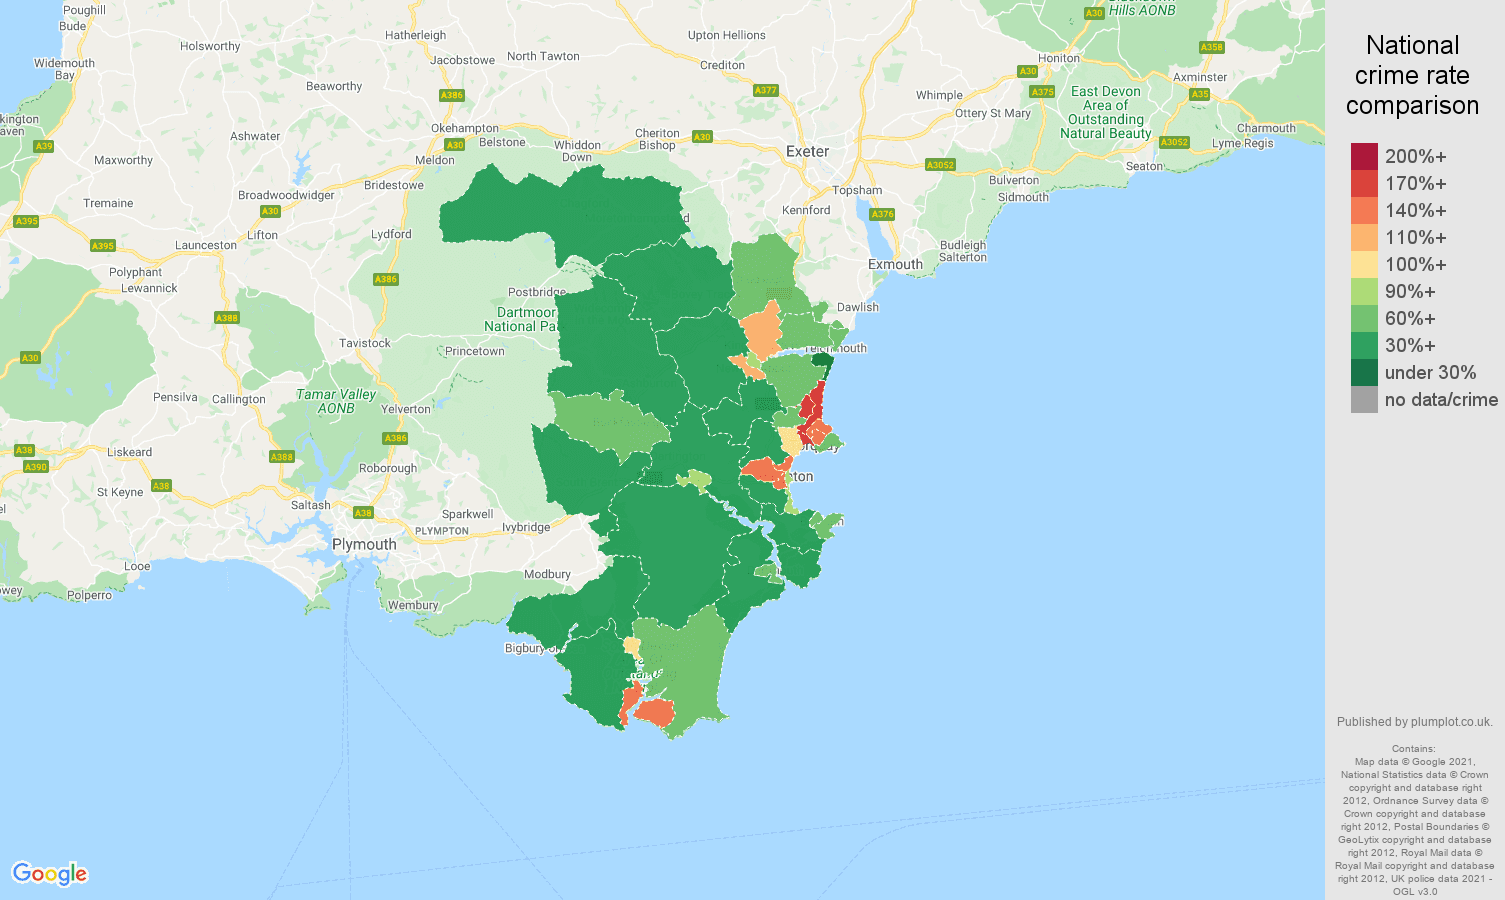 Torquay criminal damage and arson crime rate comparison map